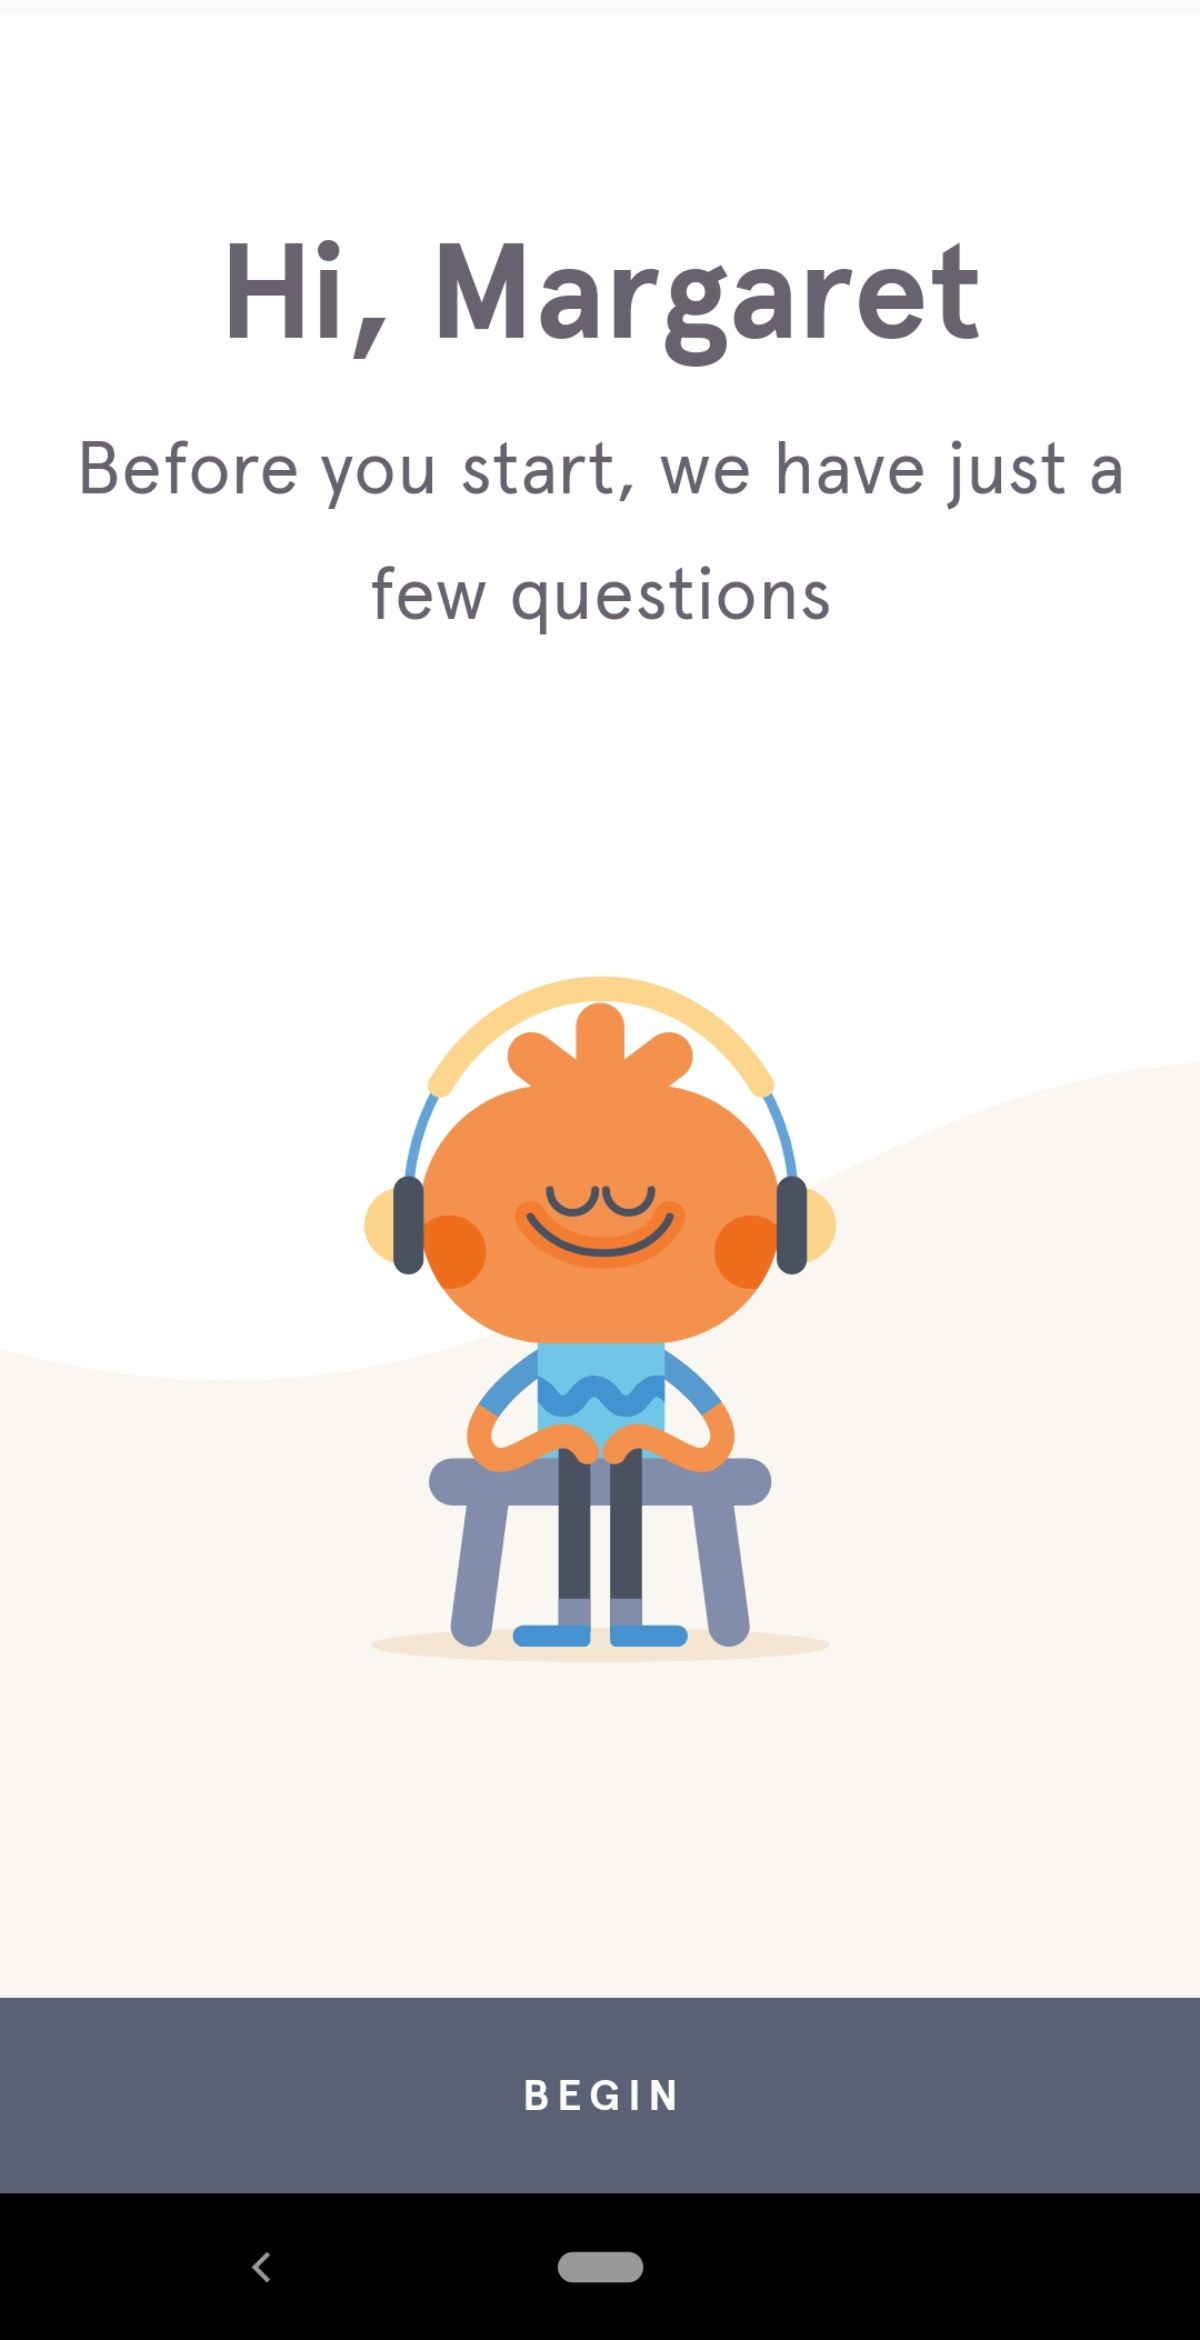 This is a screenshot of Headspace's mobile app welcome message with a personalized greeting and an illustration of a character looking happy while listening to headphones.